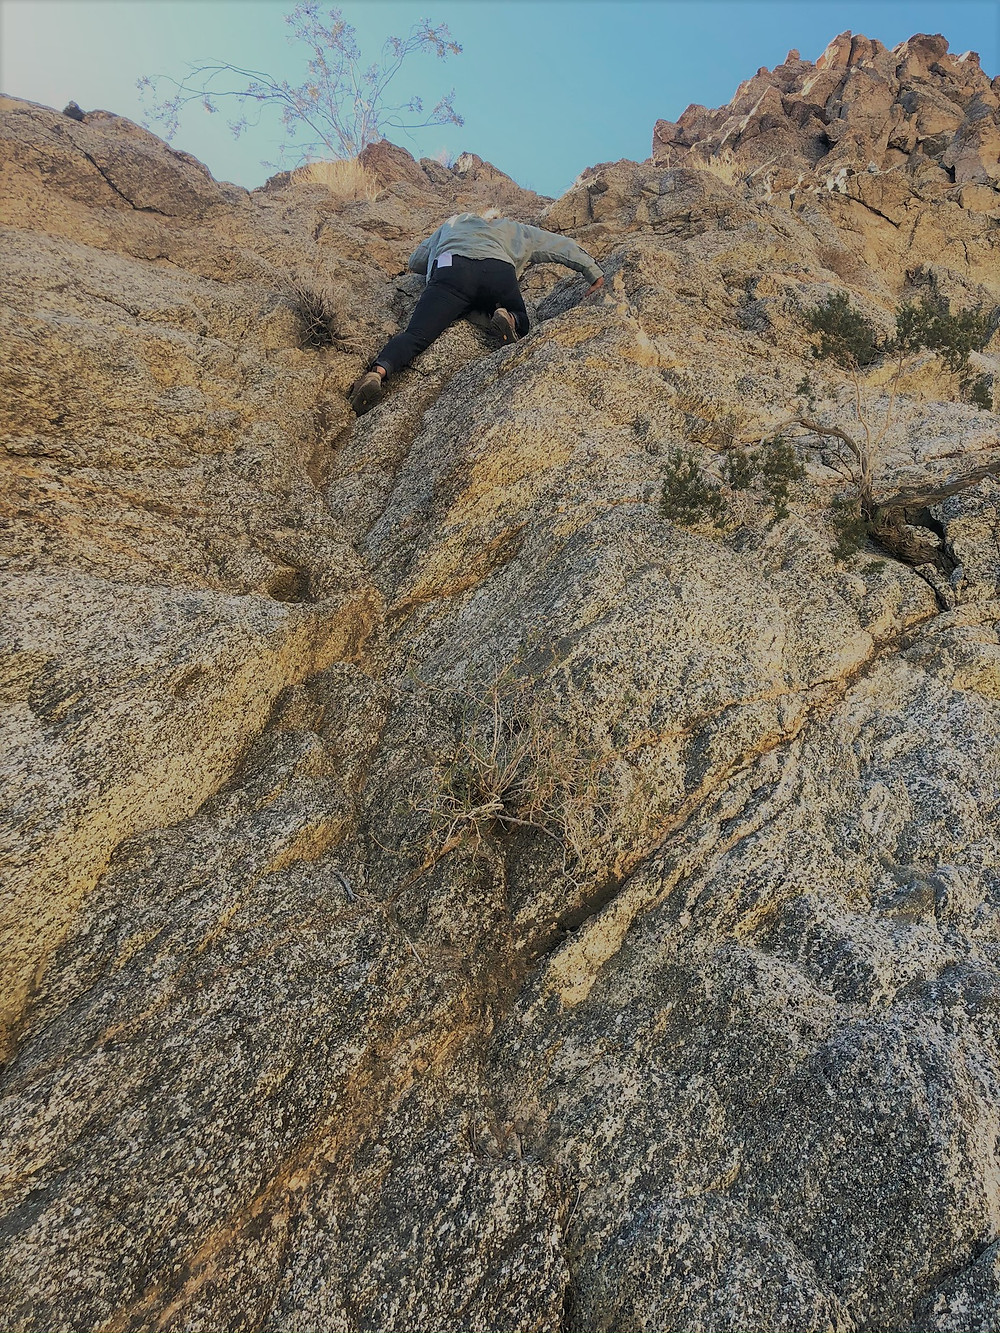 rock climbing in steep sided canyon in Santa Rosa Mountains near La Quinta Cove. Friends of the Desert Mountains